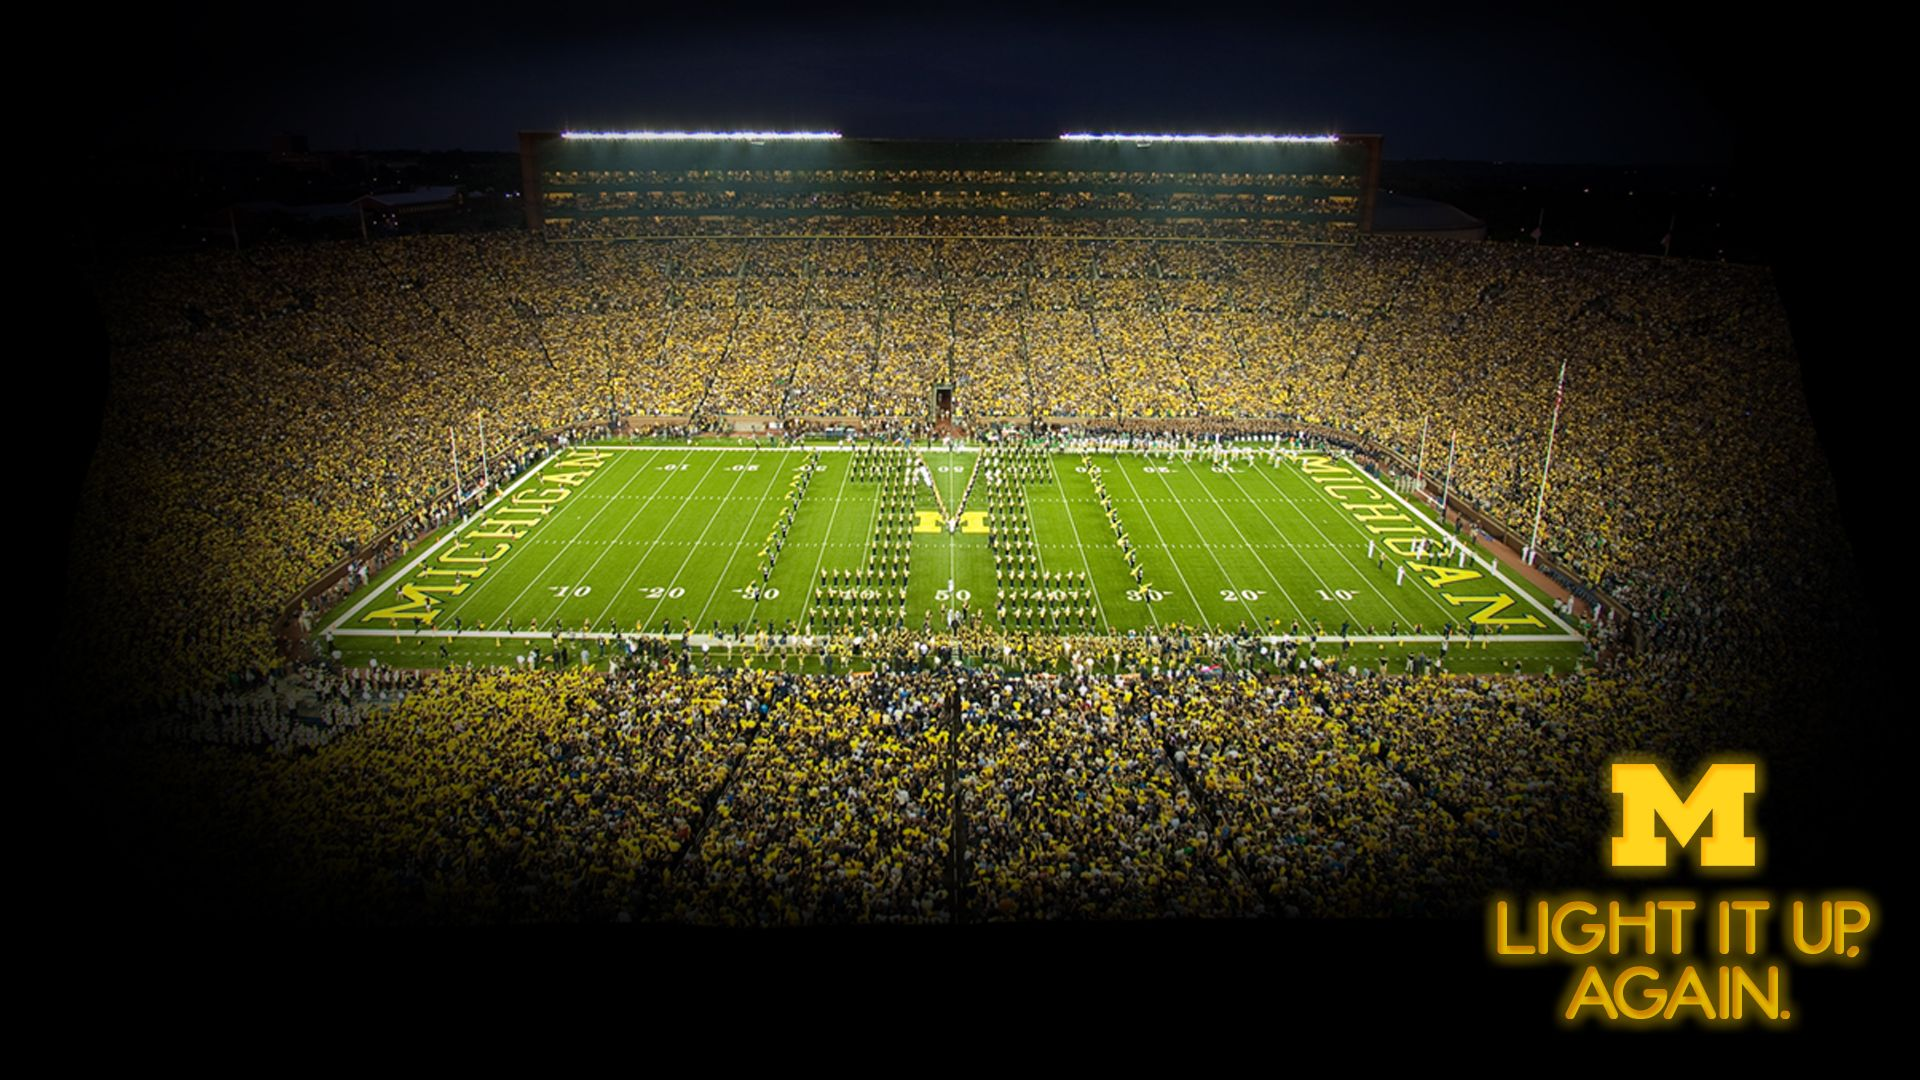 Michigan Wolverines Football Wallpapers Group Michigan Michigan Wolverines Football Wolverines Football Football Wallpaper